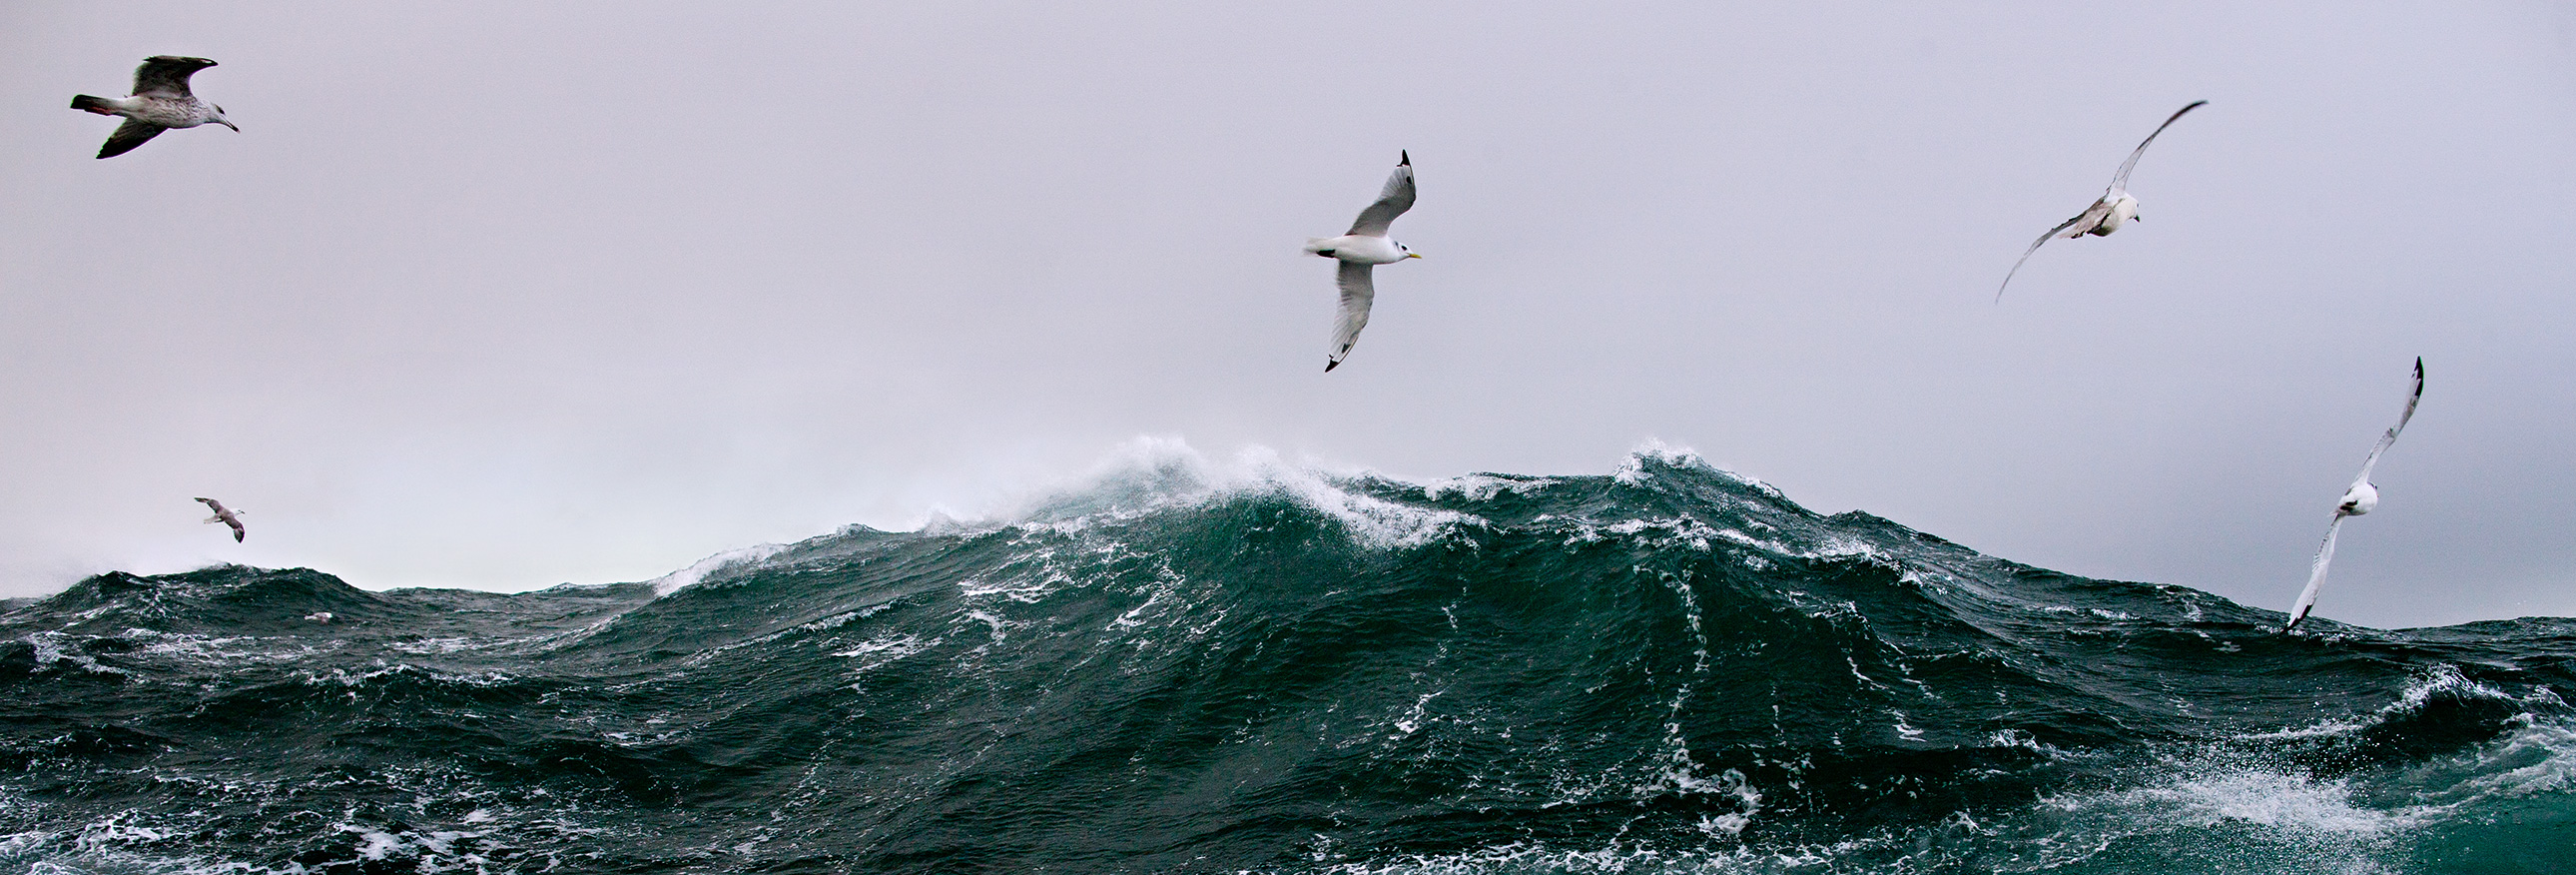 seagulls flying above rough waters